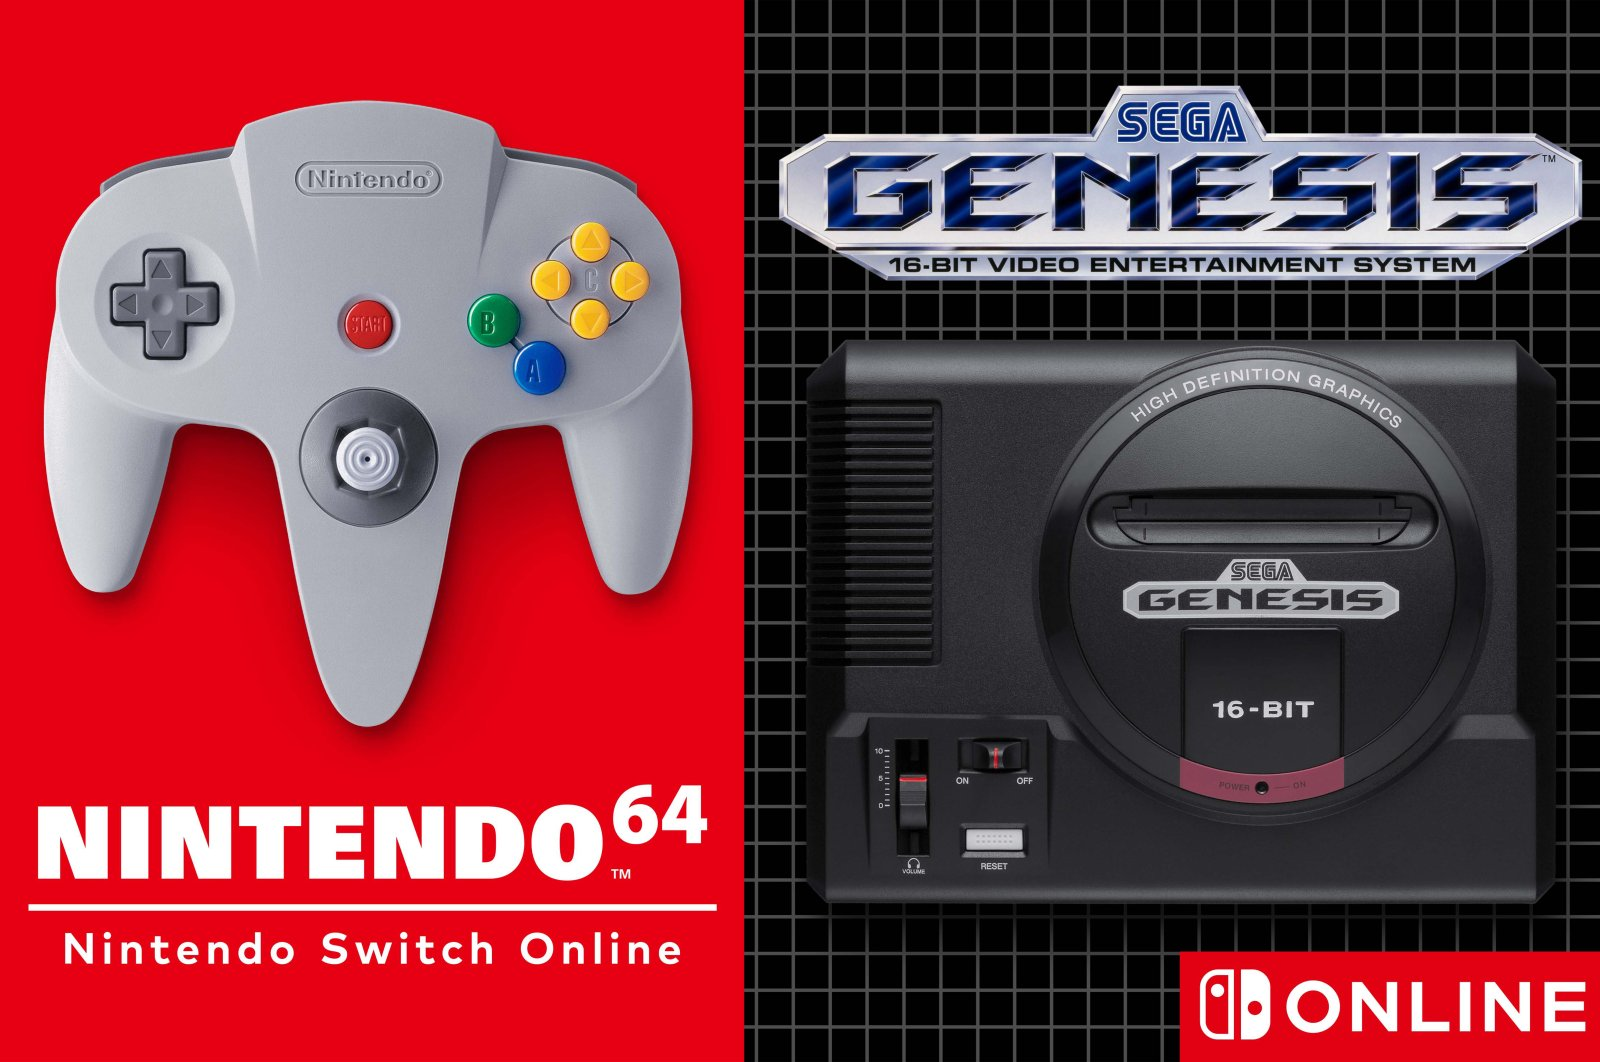 The promotional poster for the upcoming Nintendo 64 and Sega Genesis Expansion Pack (Credit: Nintendo)